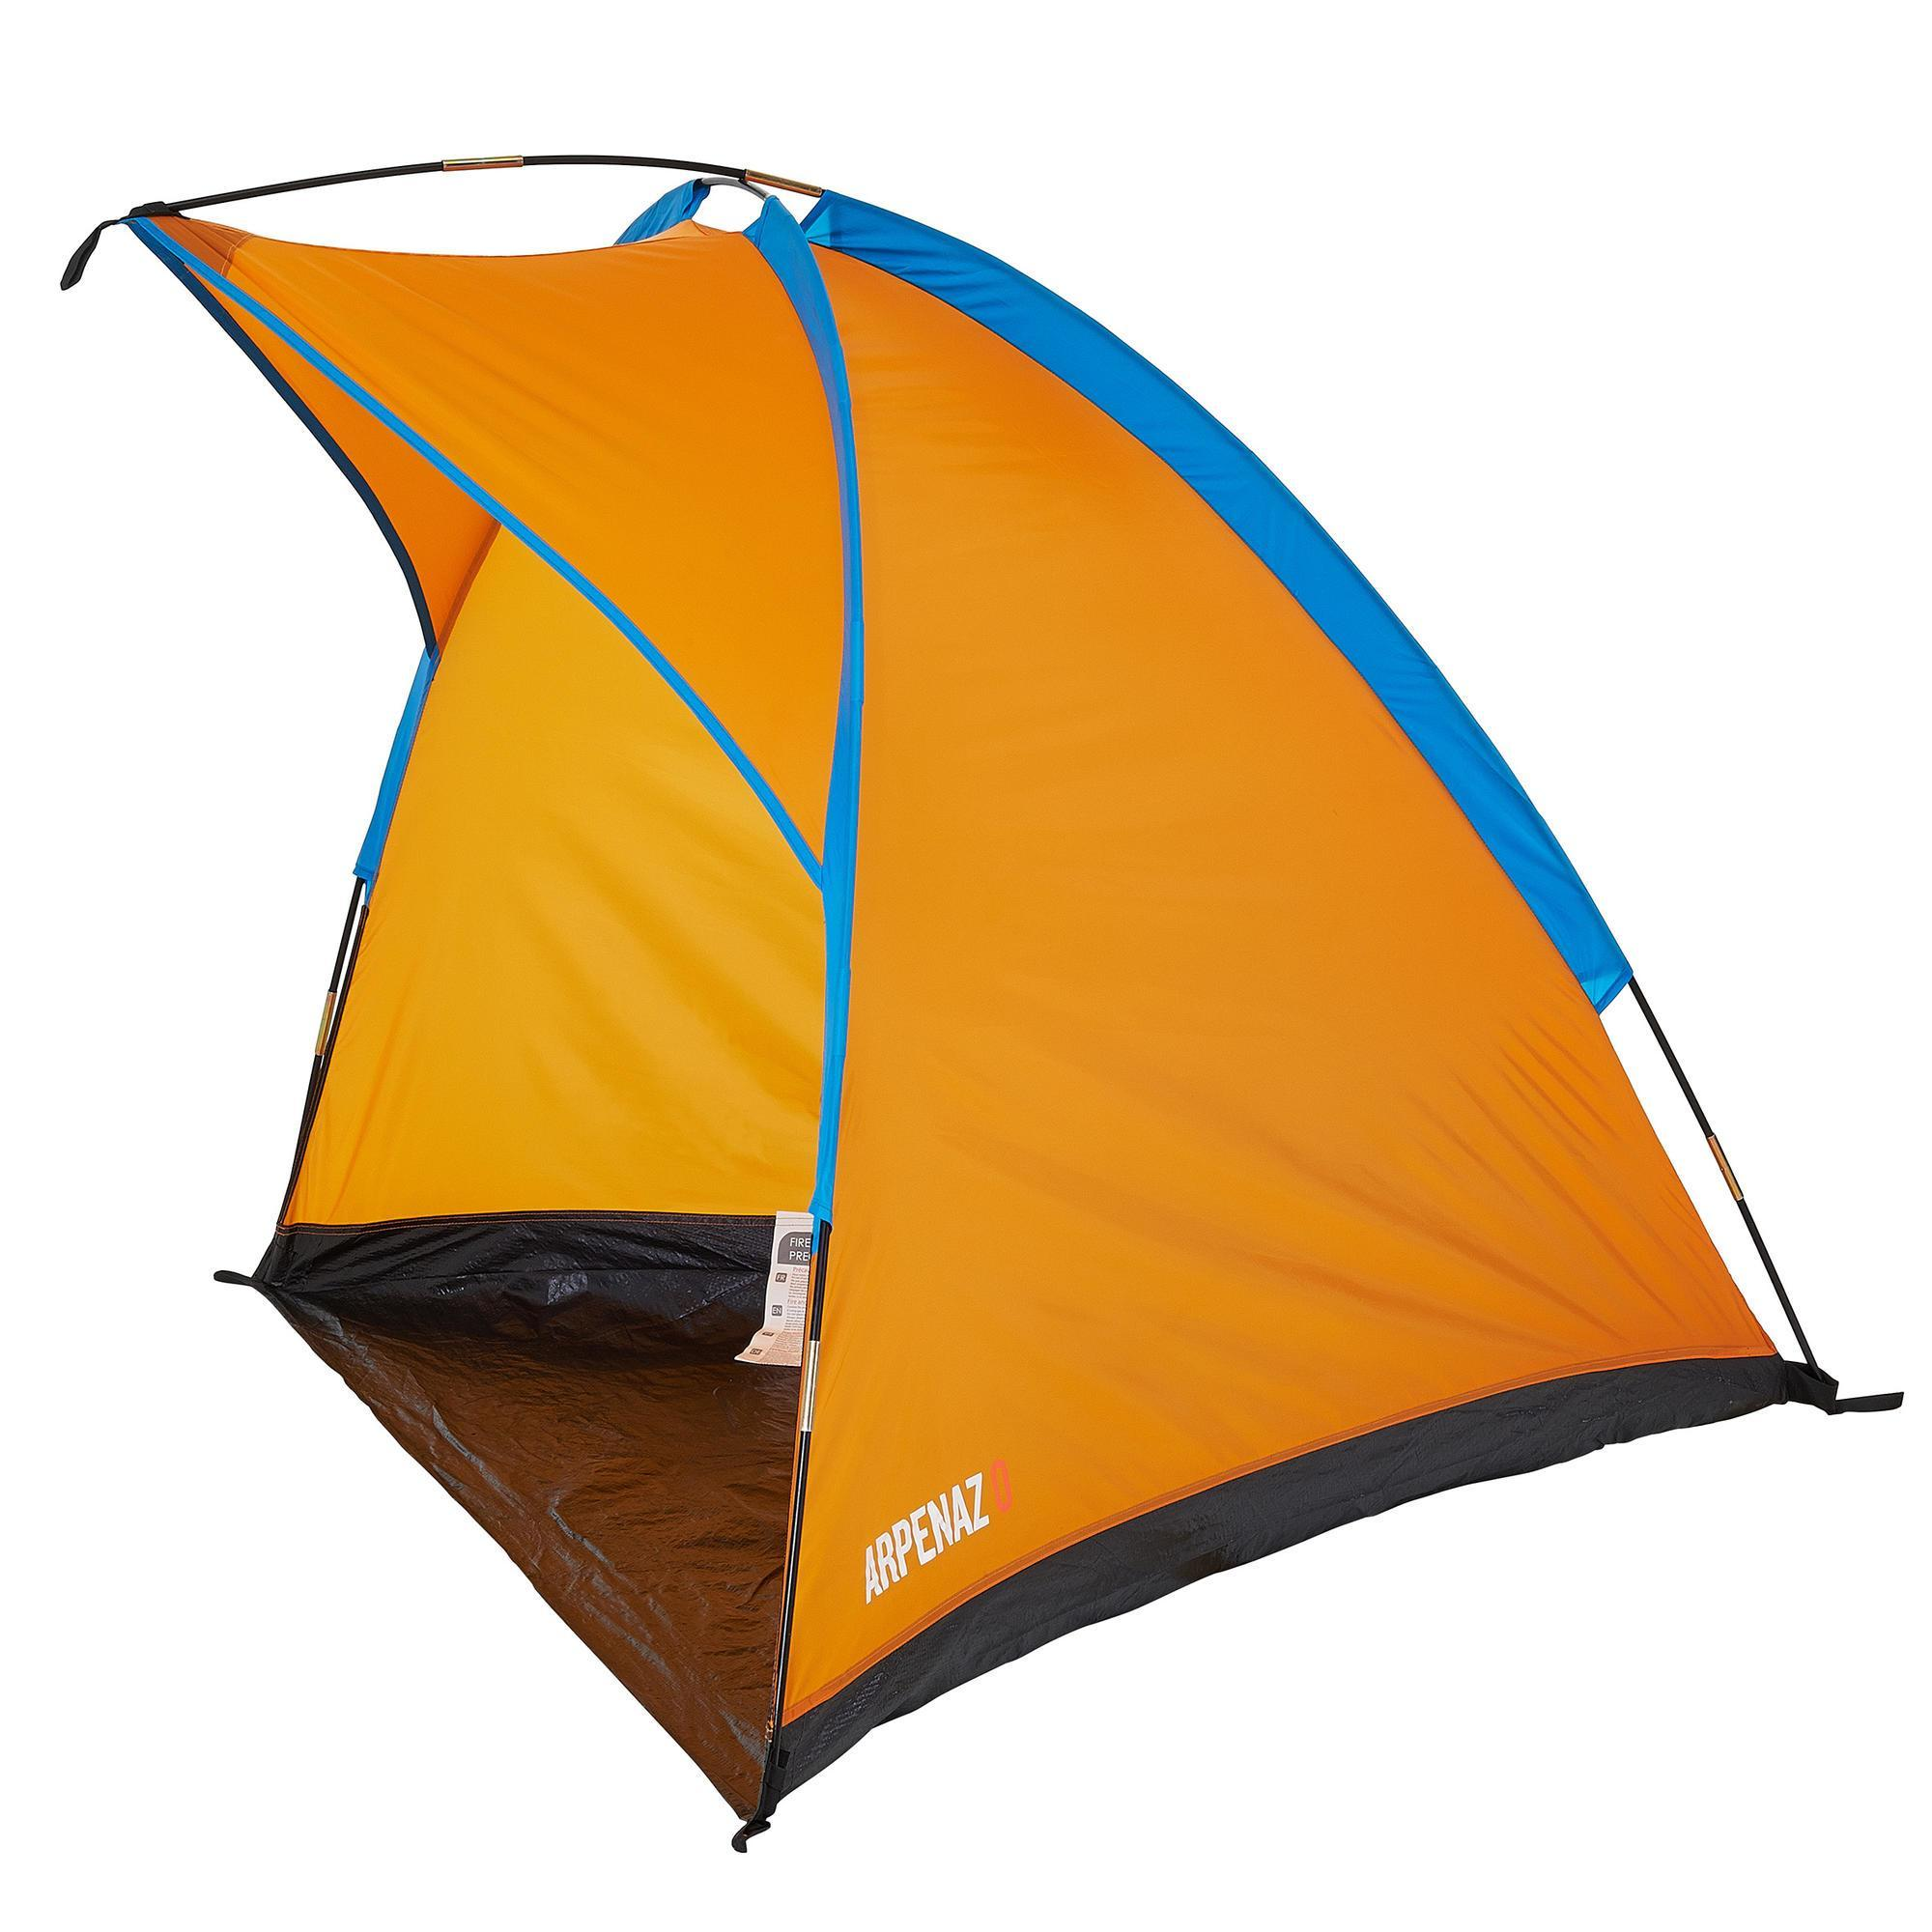 ARPENAZ HIKING SHELTER 0 SPF 30 ORANGE